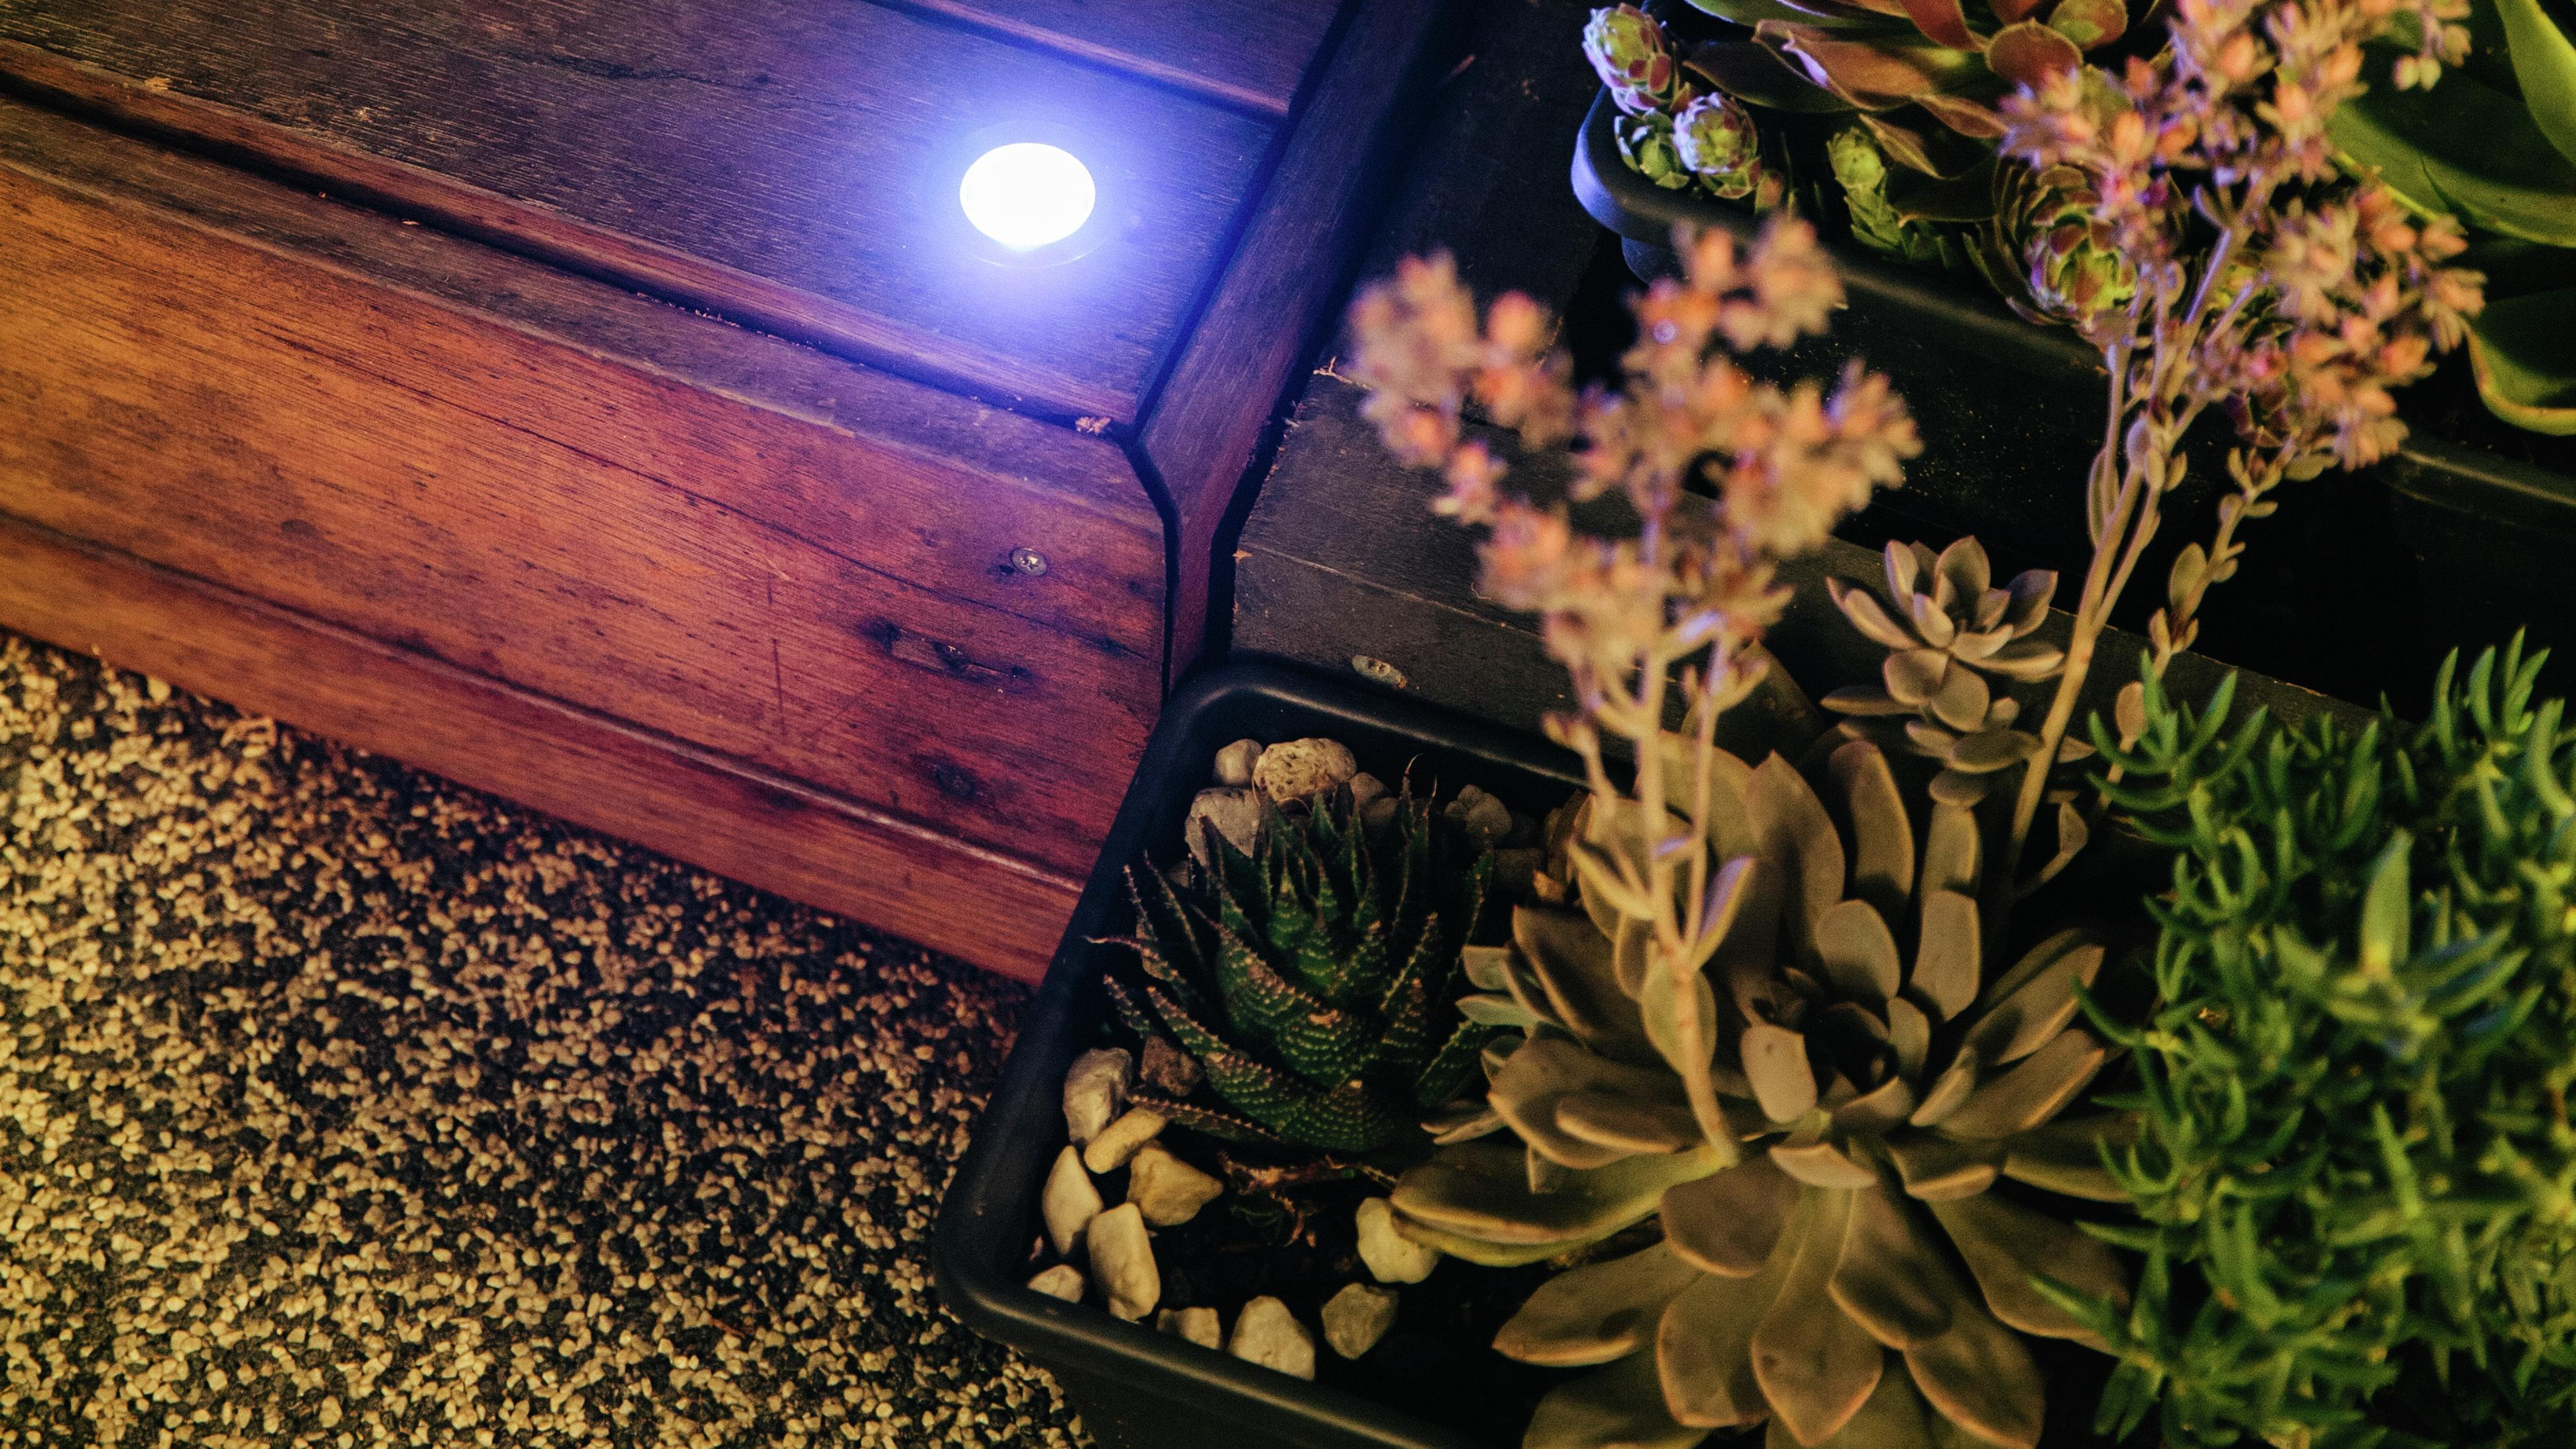 Deck with deck light and succulents.